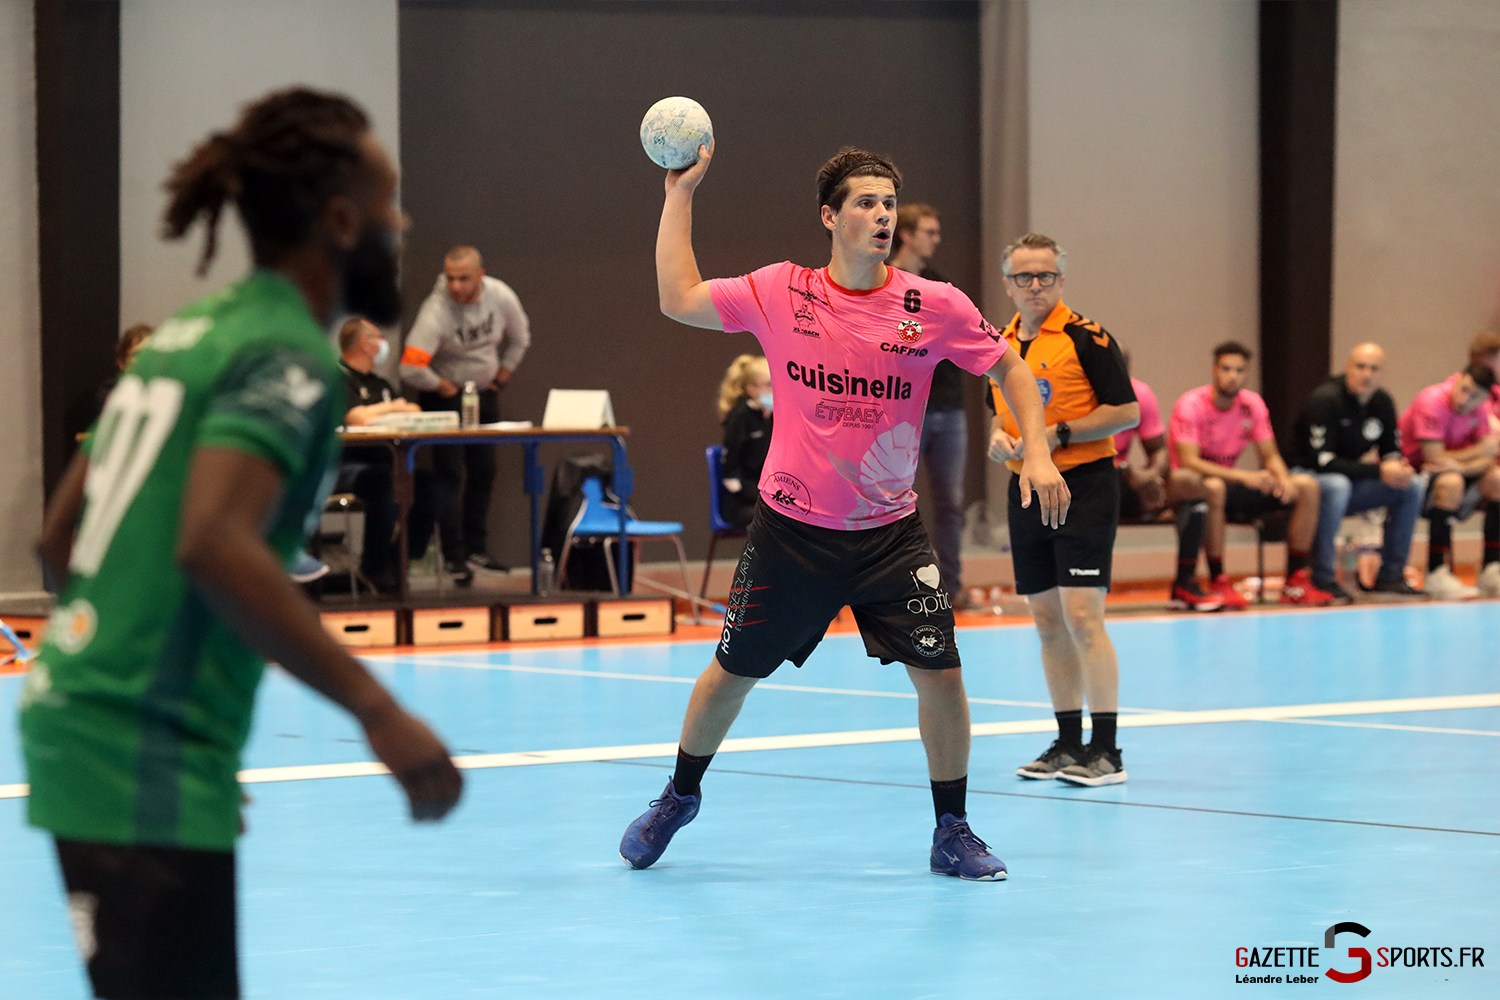 HANDBALL: APH for the fourth consecutive victory